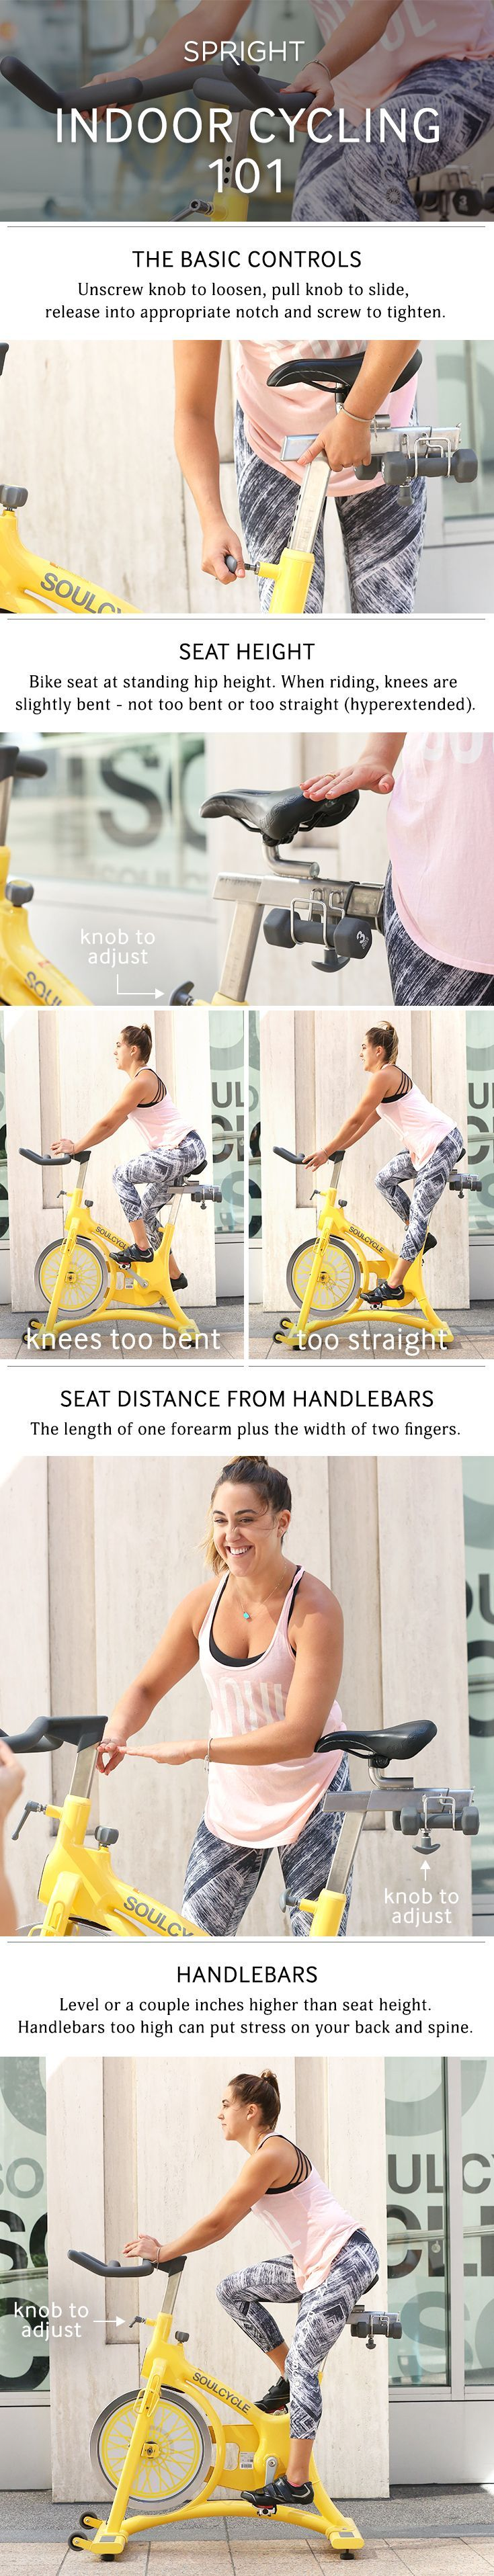 If you like these tips on Indoor Cycling check out this post at http://judy-isms.com/spin-class/.